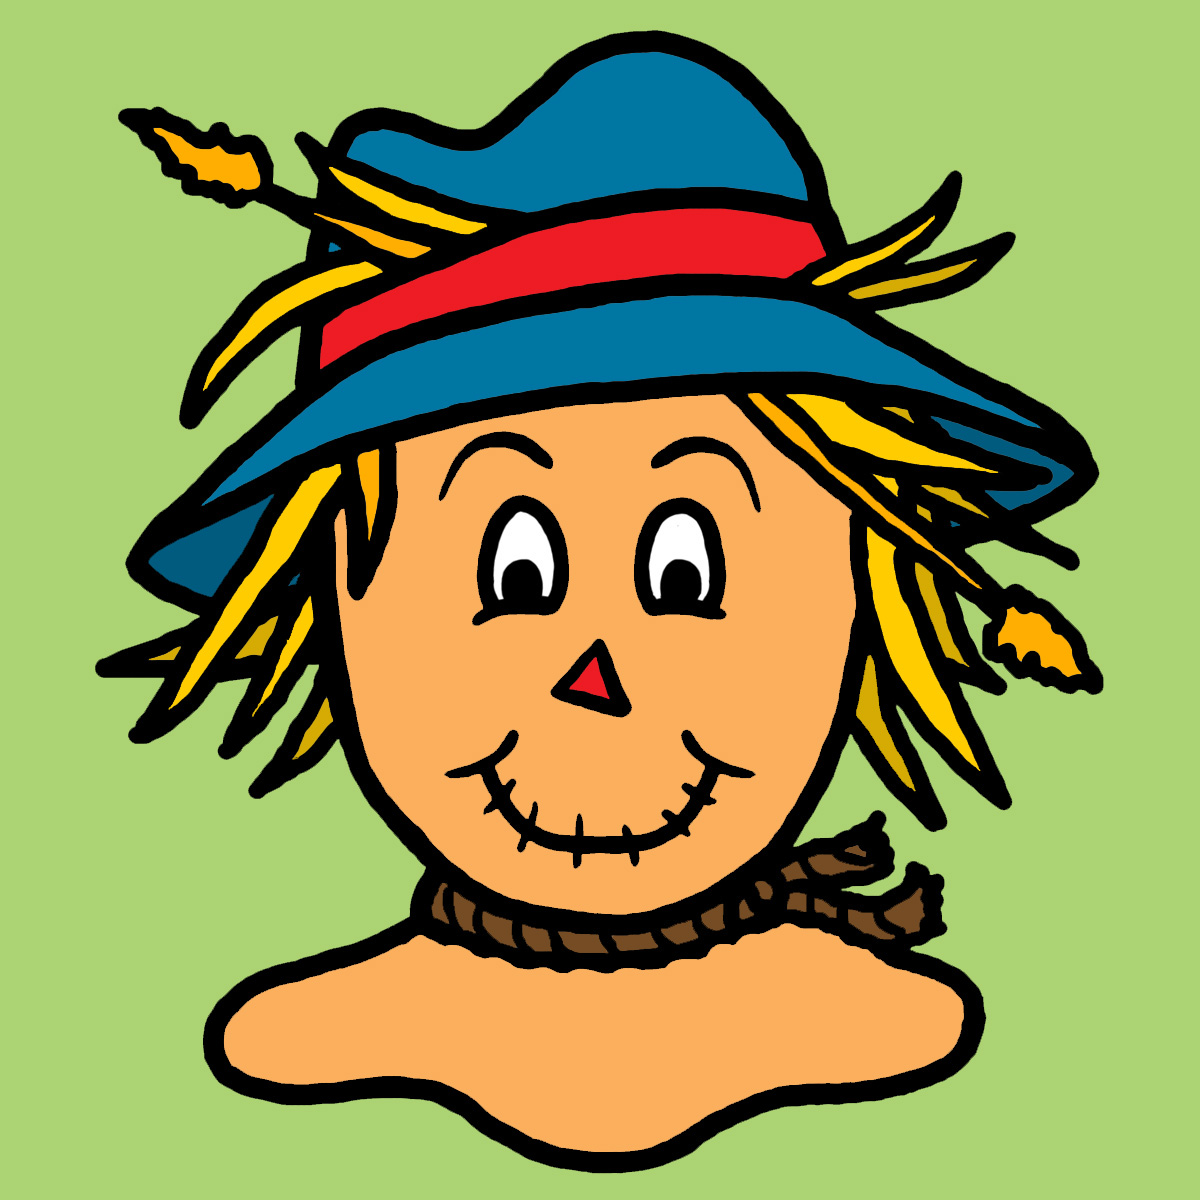 Discovery Kids Clip Art - Cliparts.co